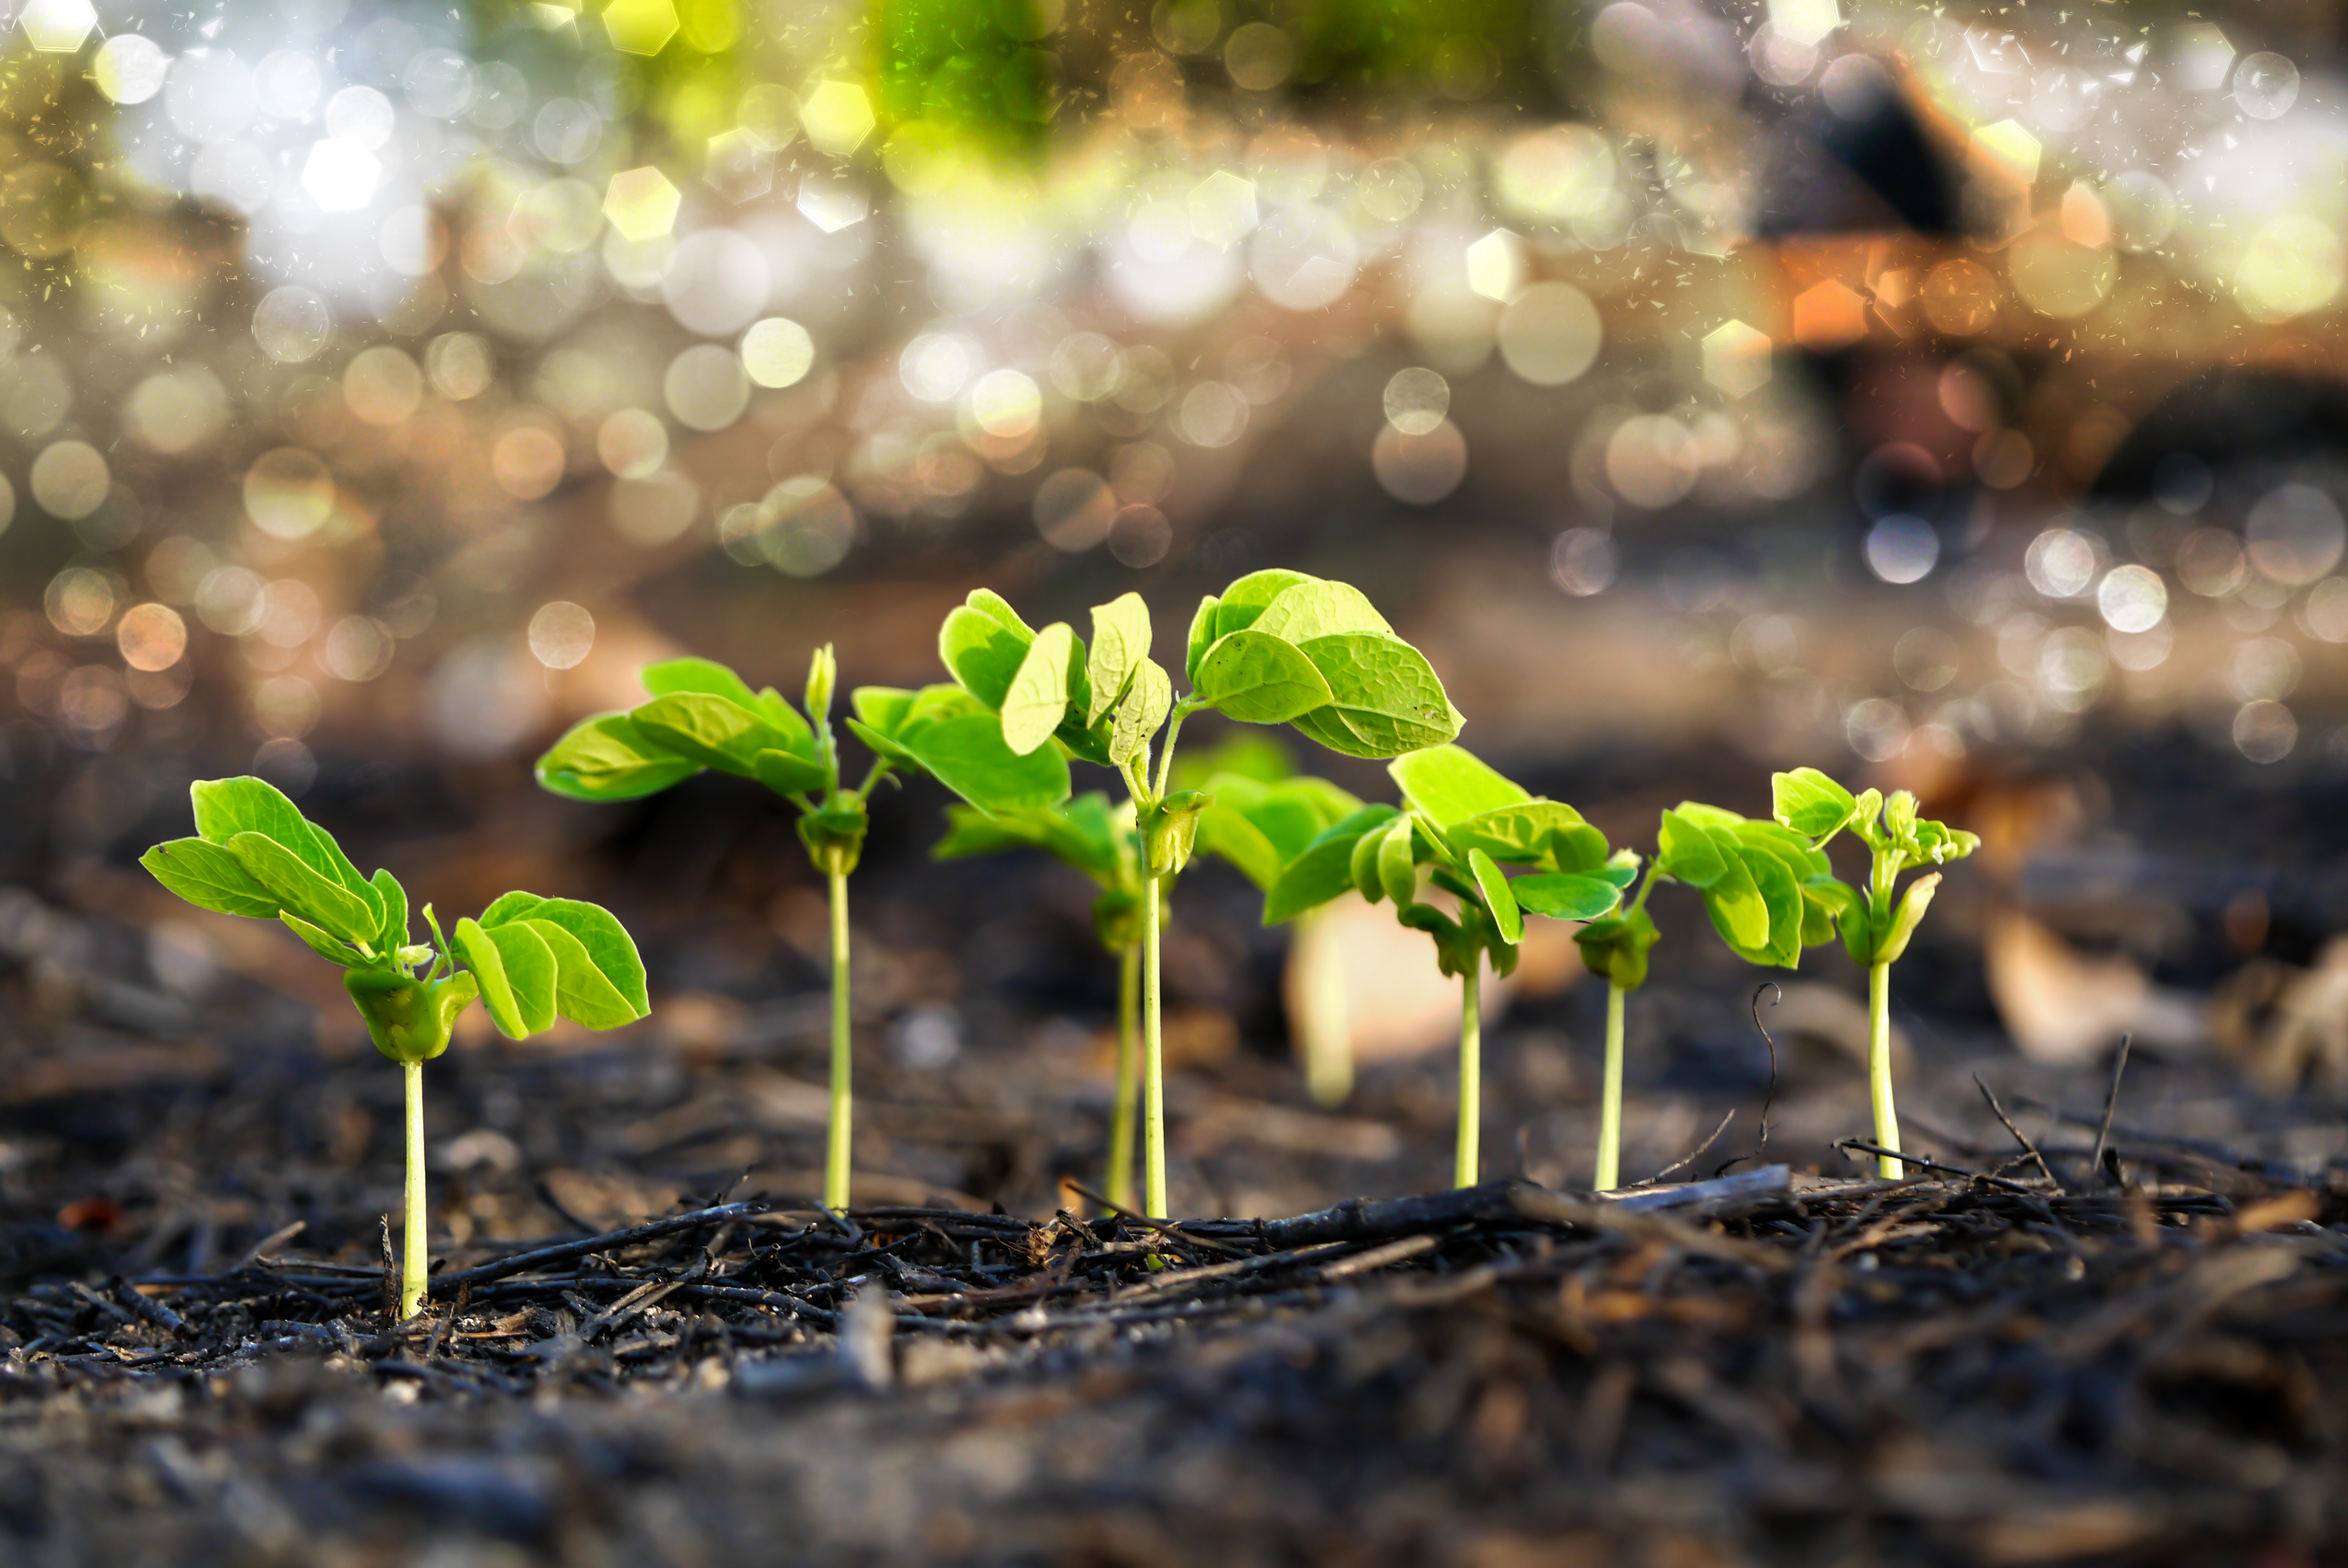 9590662-green-sprout-growing-from-seed